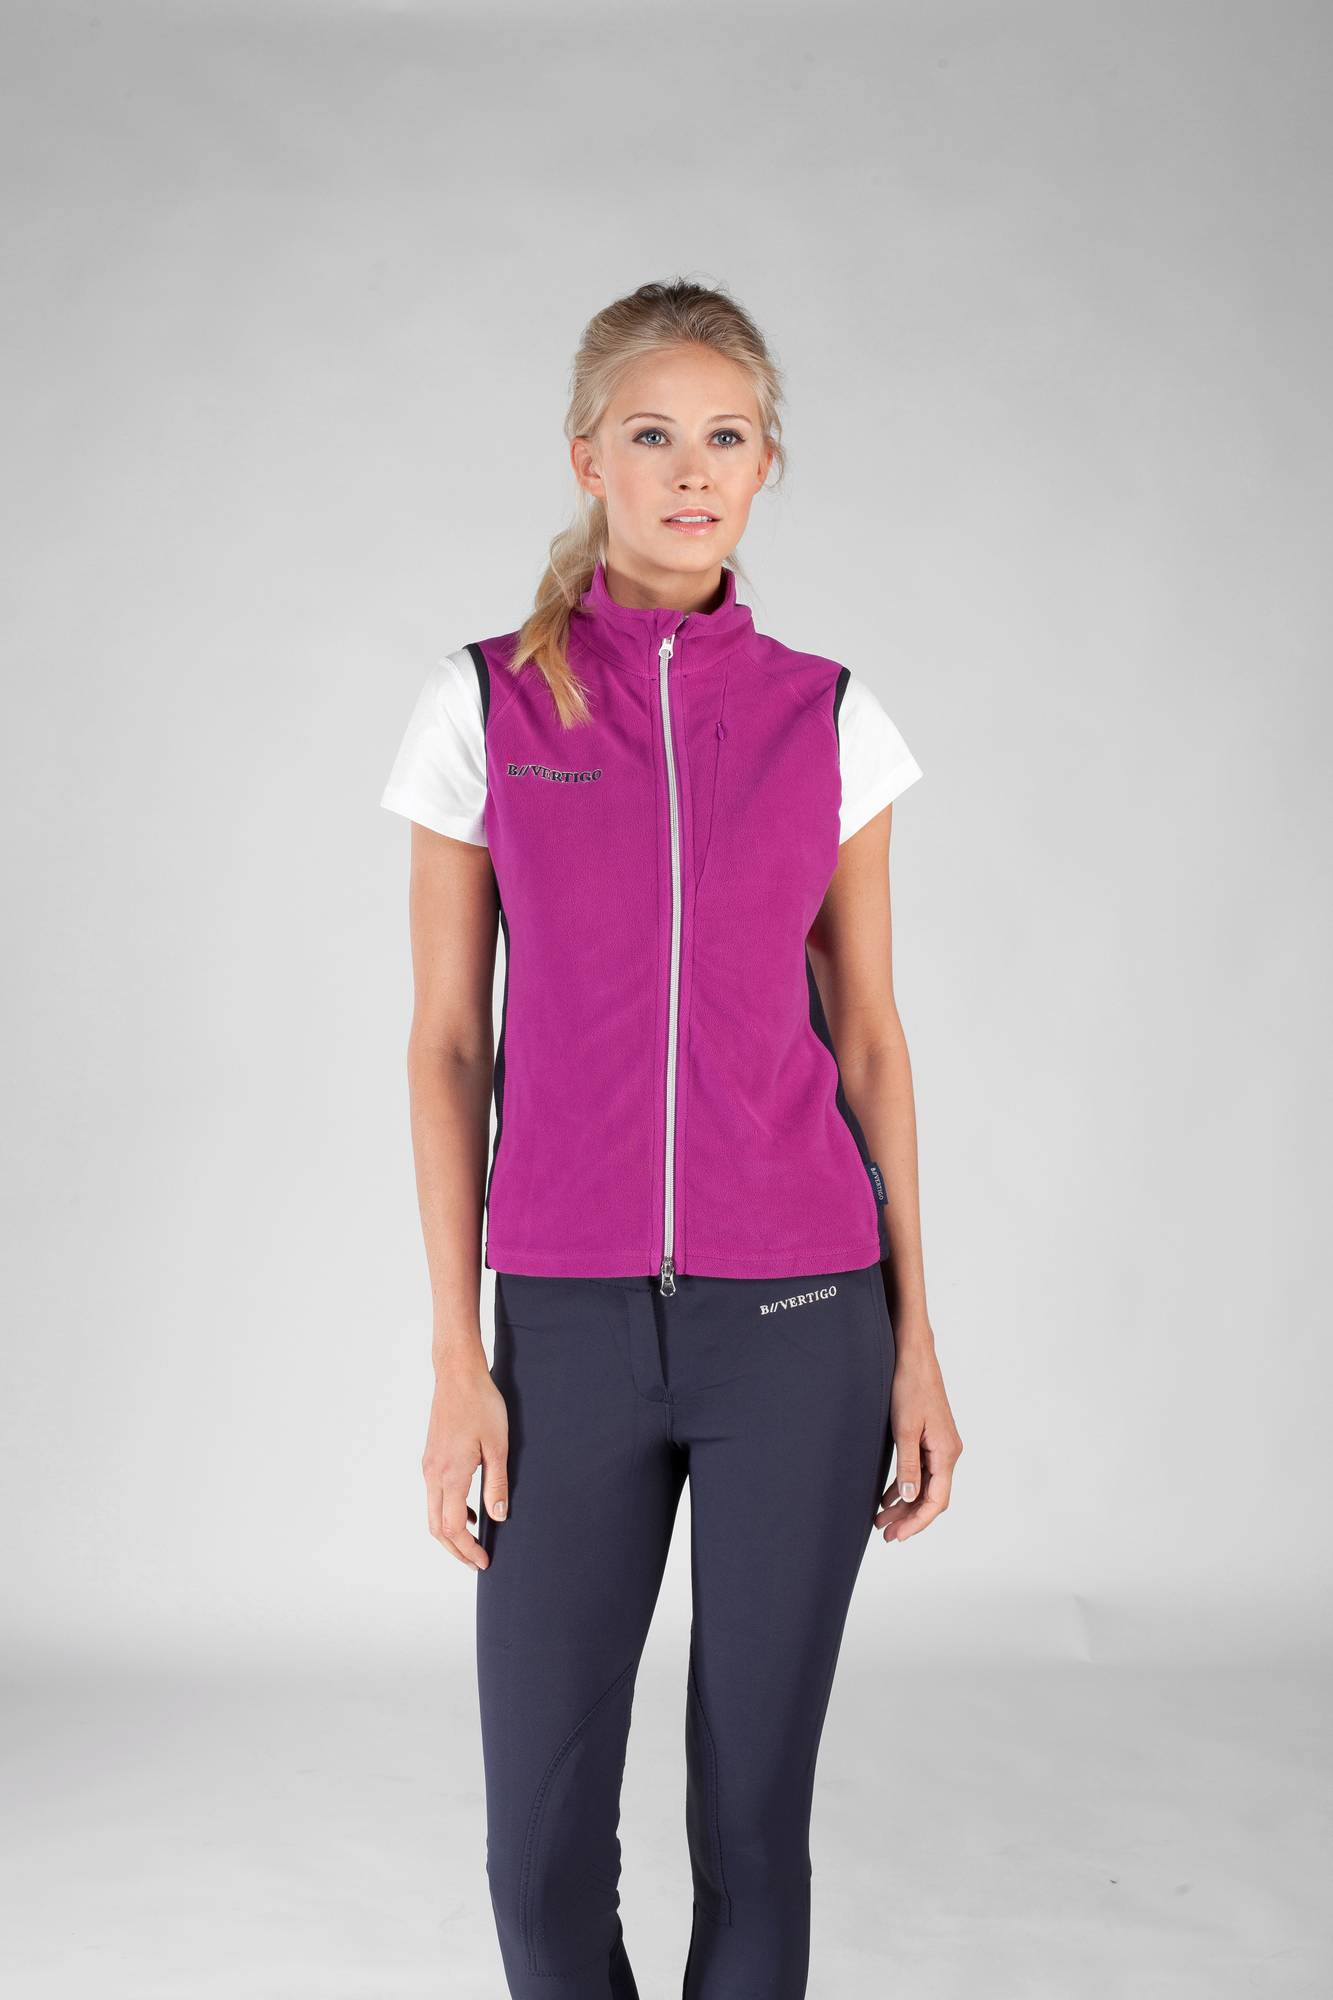 B Vertigo Karen Women's Fleece Vest